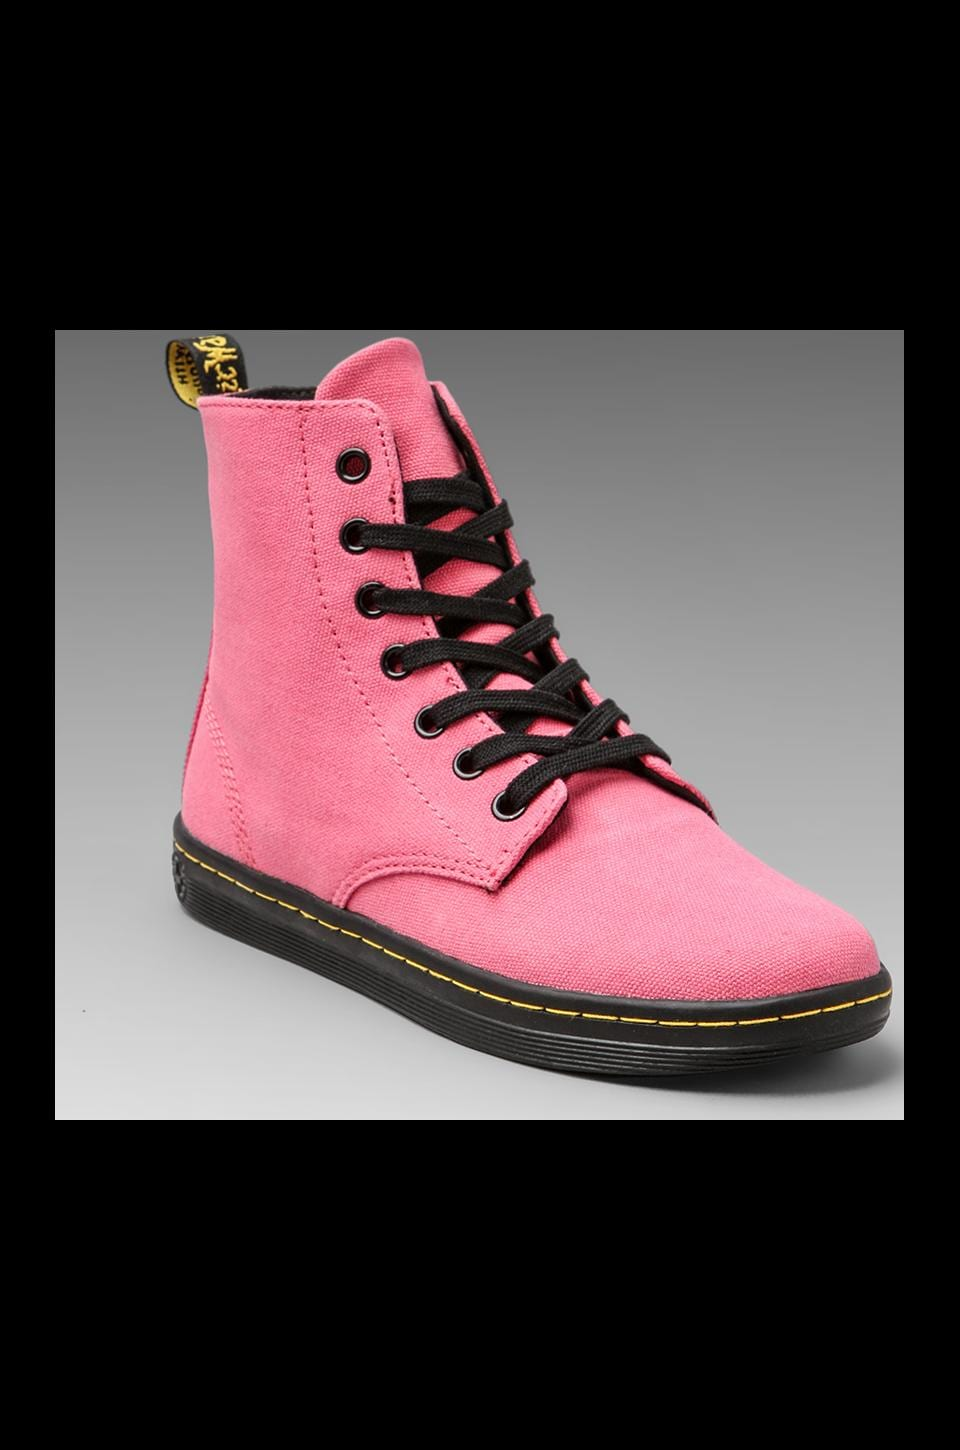 Dr. Martens Hackney 7-Eye Boot in Acid Pink